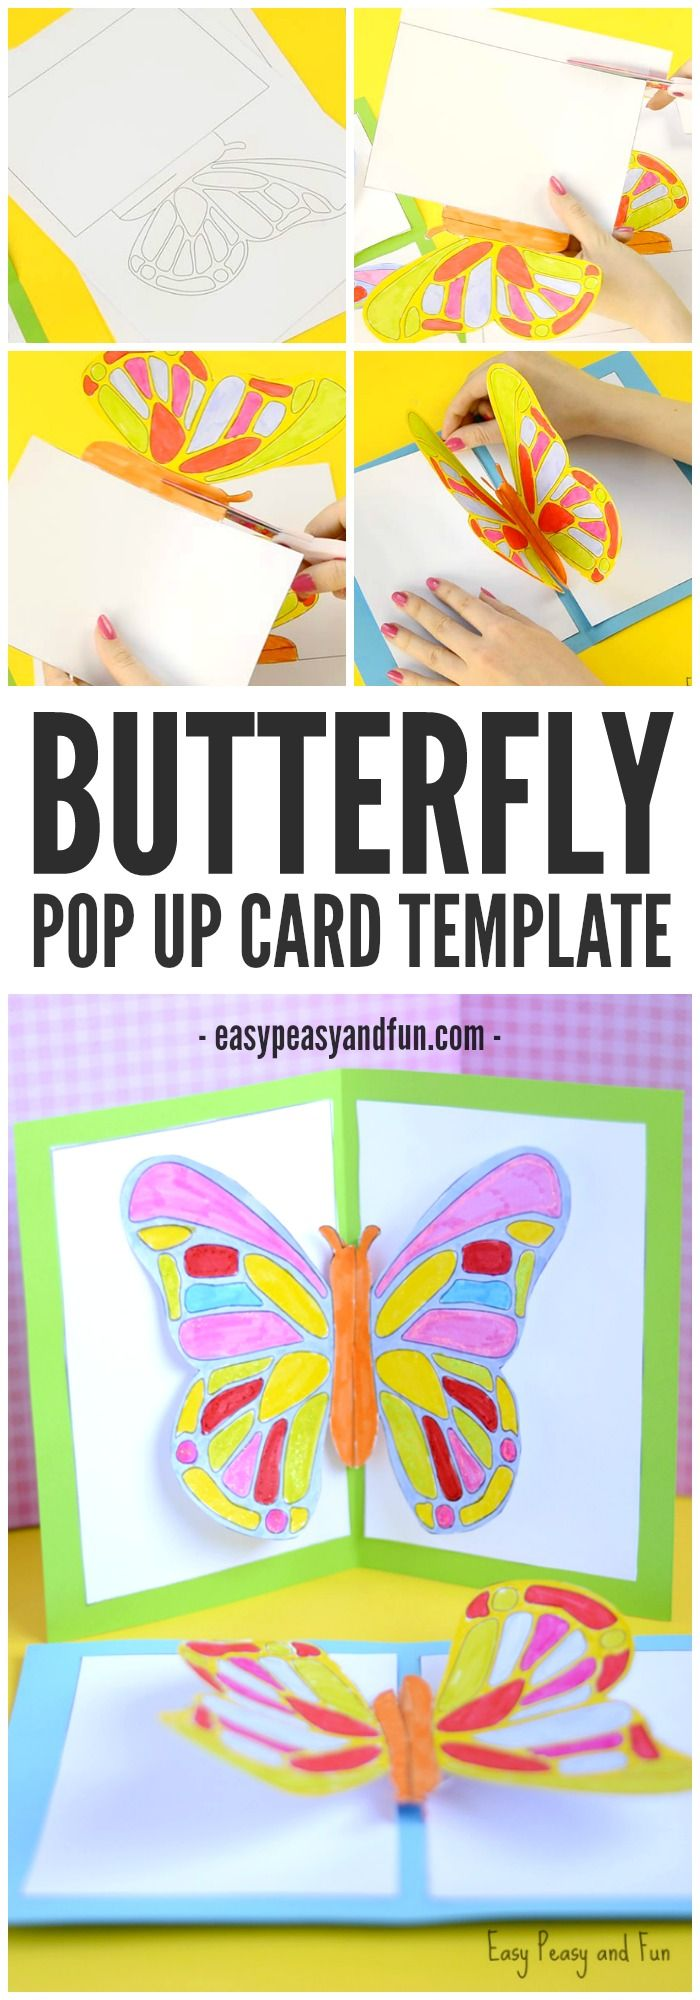 Diy Butterfly Pop Up Card With A Template Pop Up Card Templates Insect Crafts Pop Art For Kids